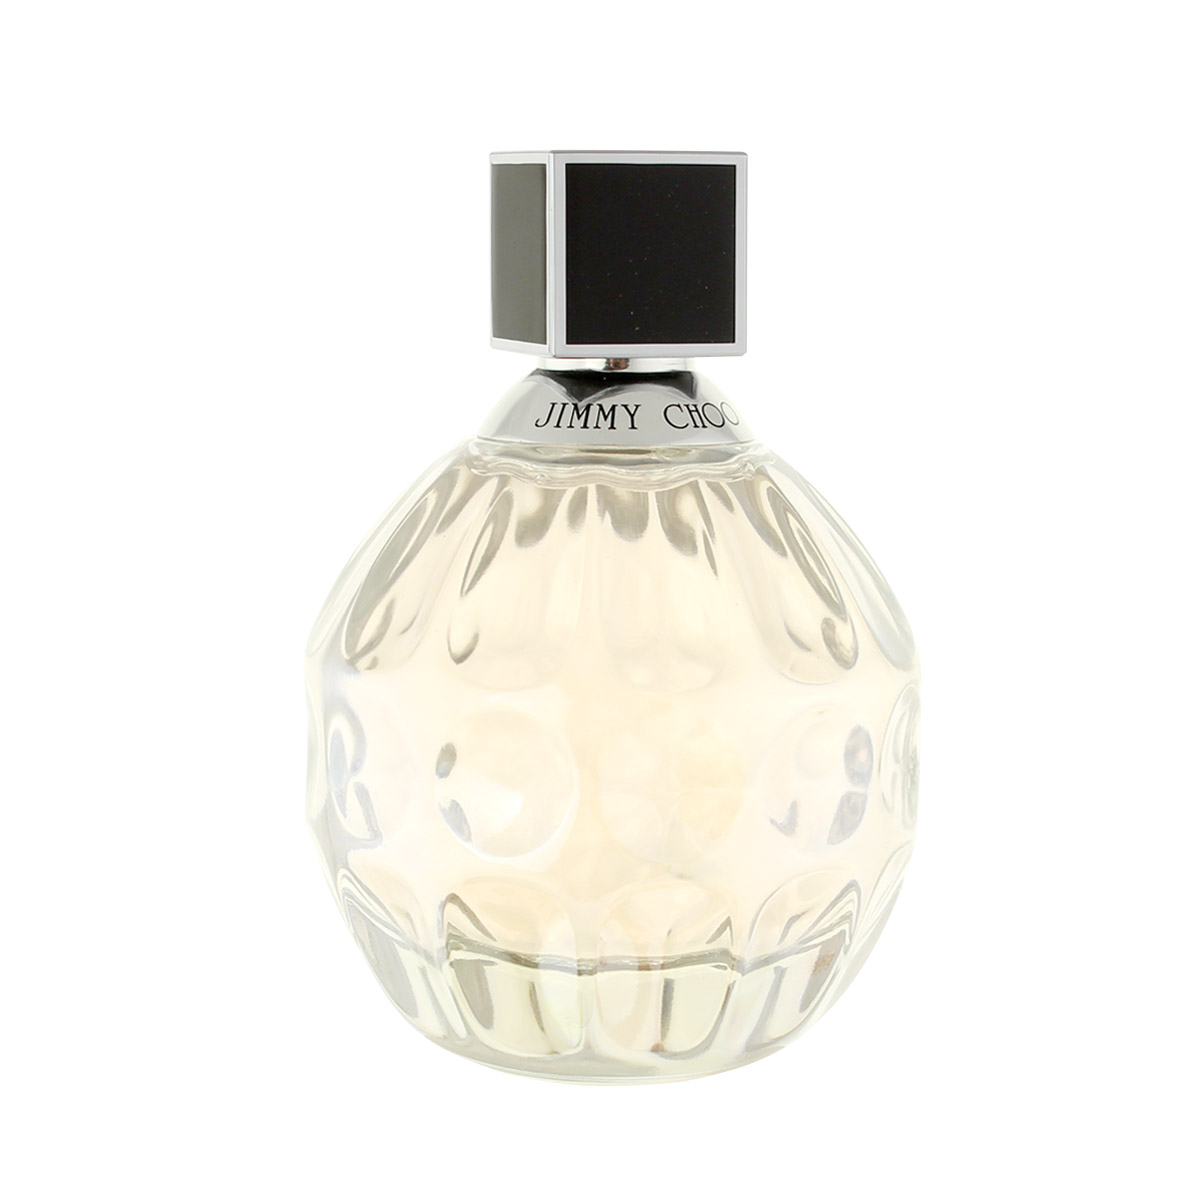 Jimmy Choo Jimmy Choo EDT tester 100 ml W